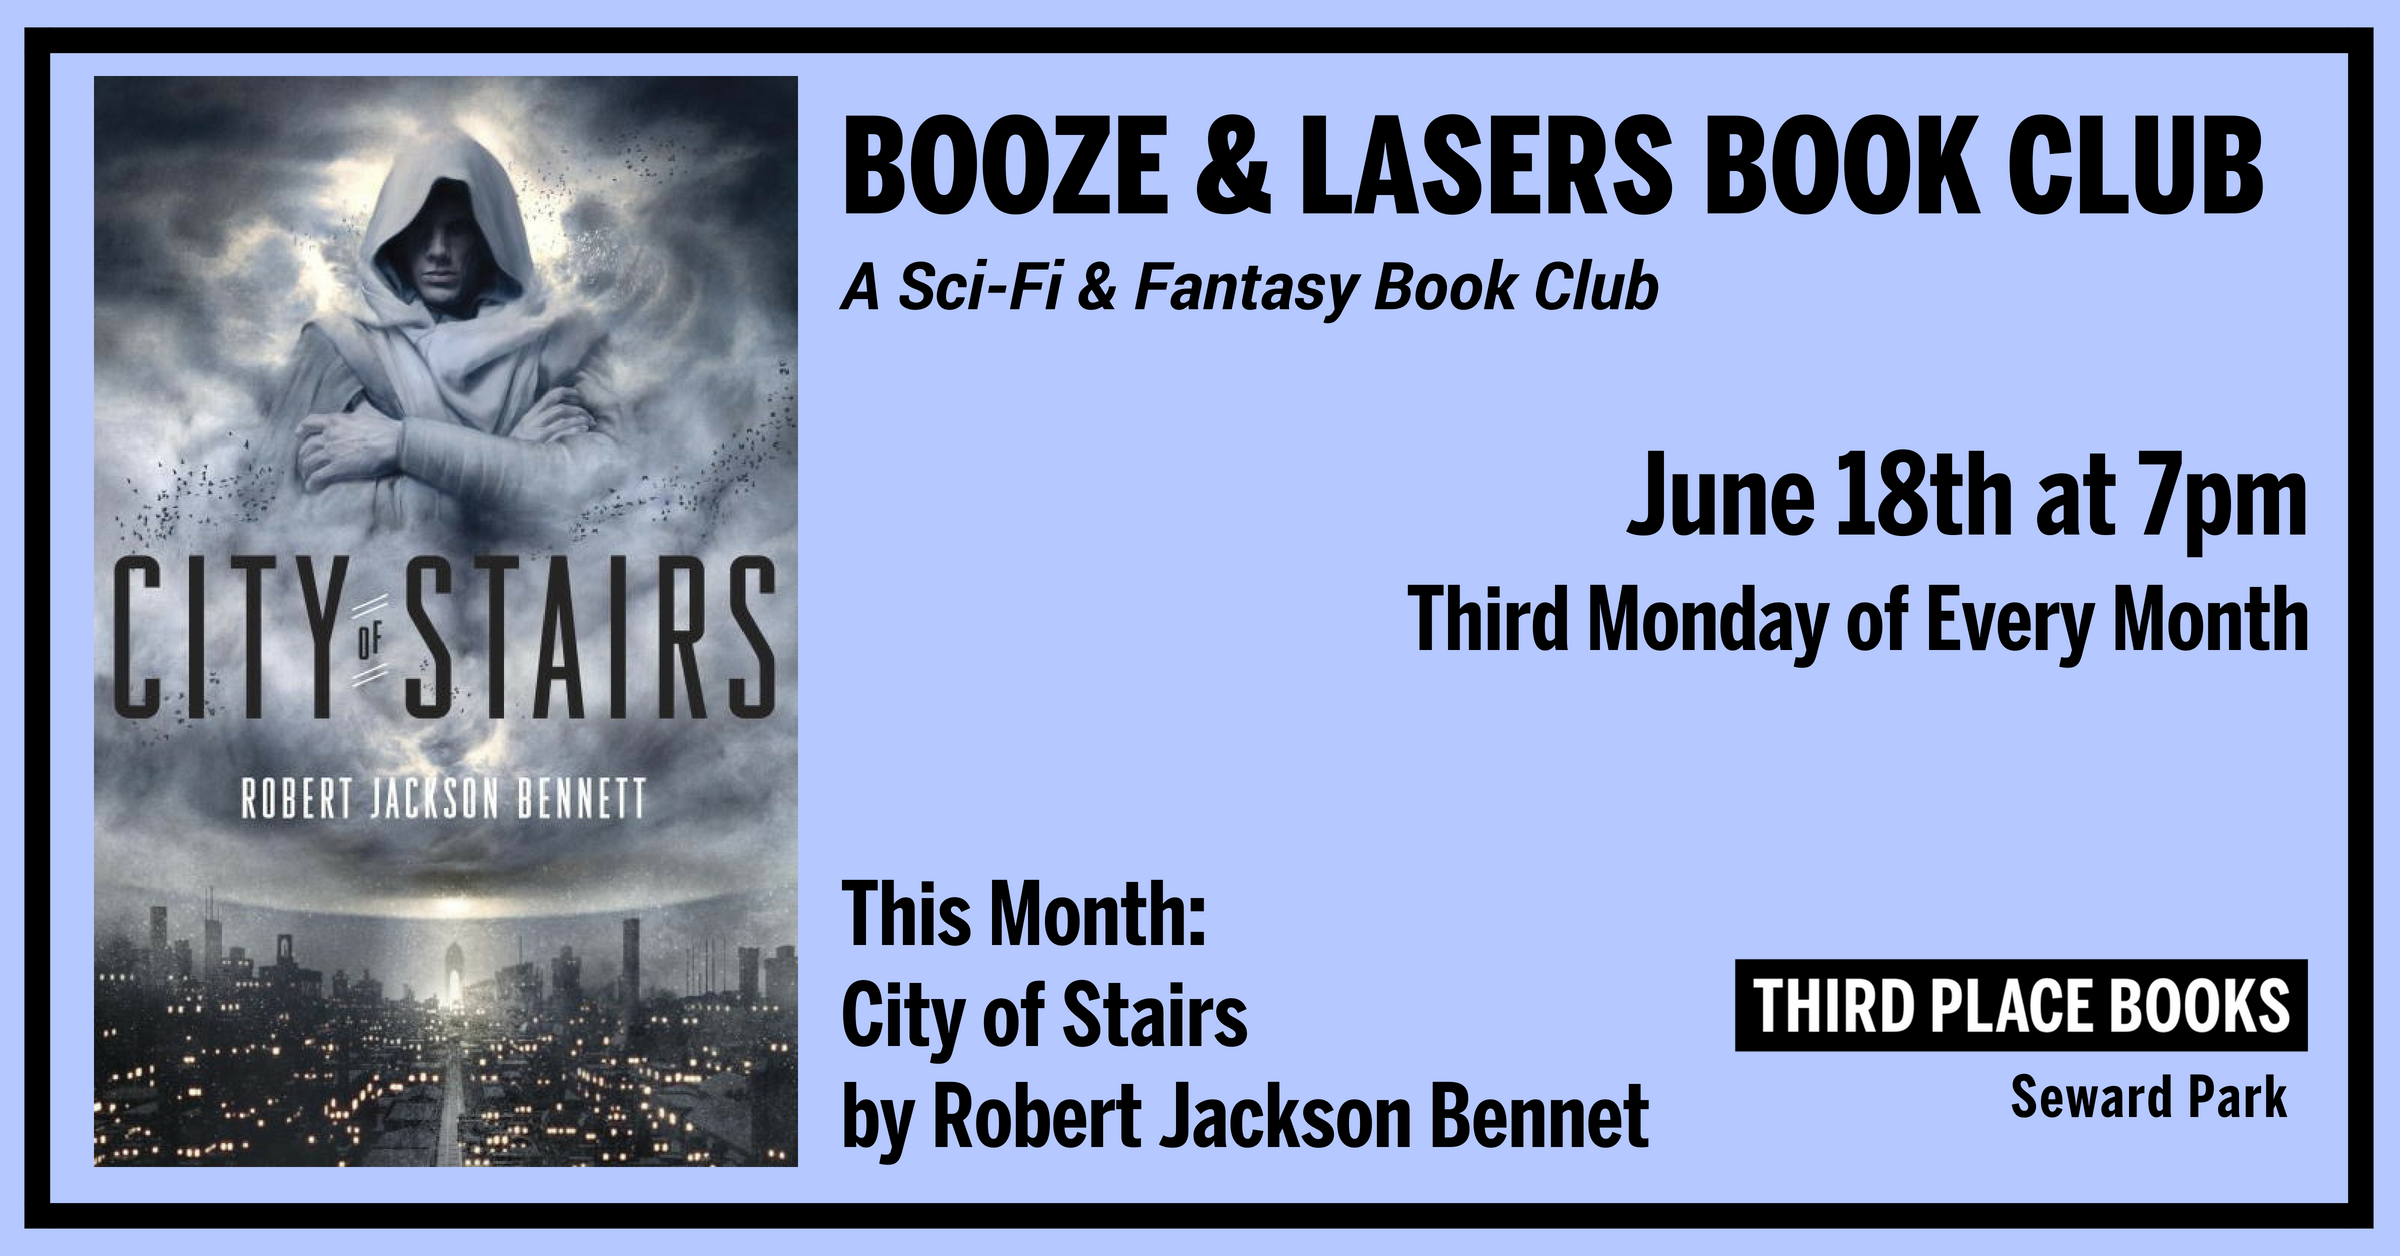 Booze & Lasers Book Club discussing City of Stairs on Monday, June 18th at 7pm